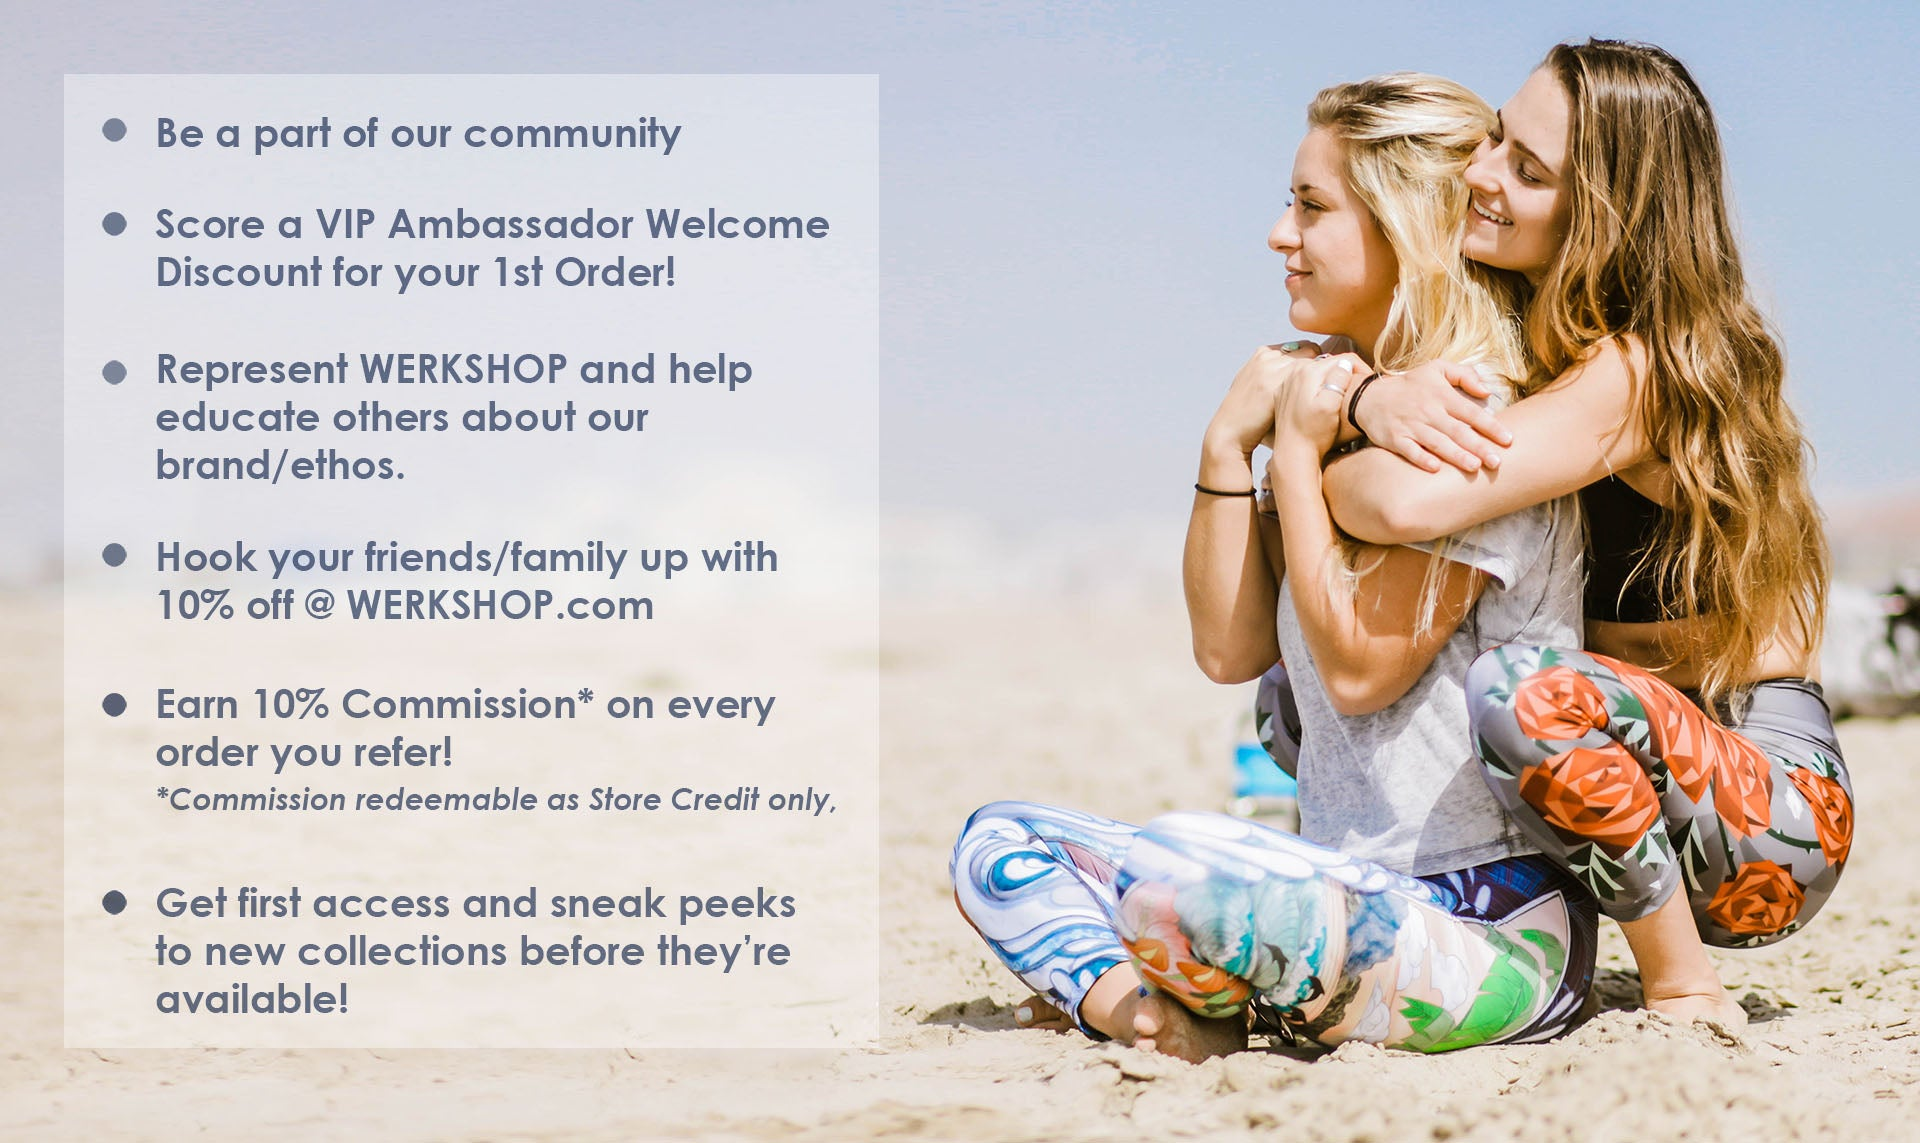 Be a part of our community, Represent WERKSHOP, Receive a VIP Ambassador Welcome Discount, Share 10% off with friends/family, earn 10% store-credit commission on orders you refer, get first sneaks!